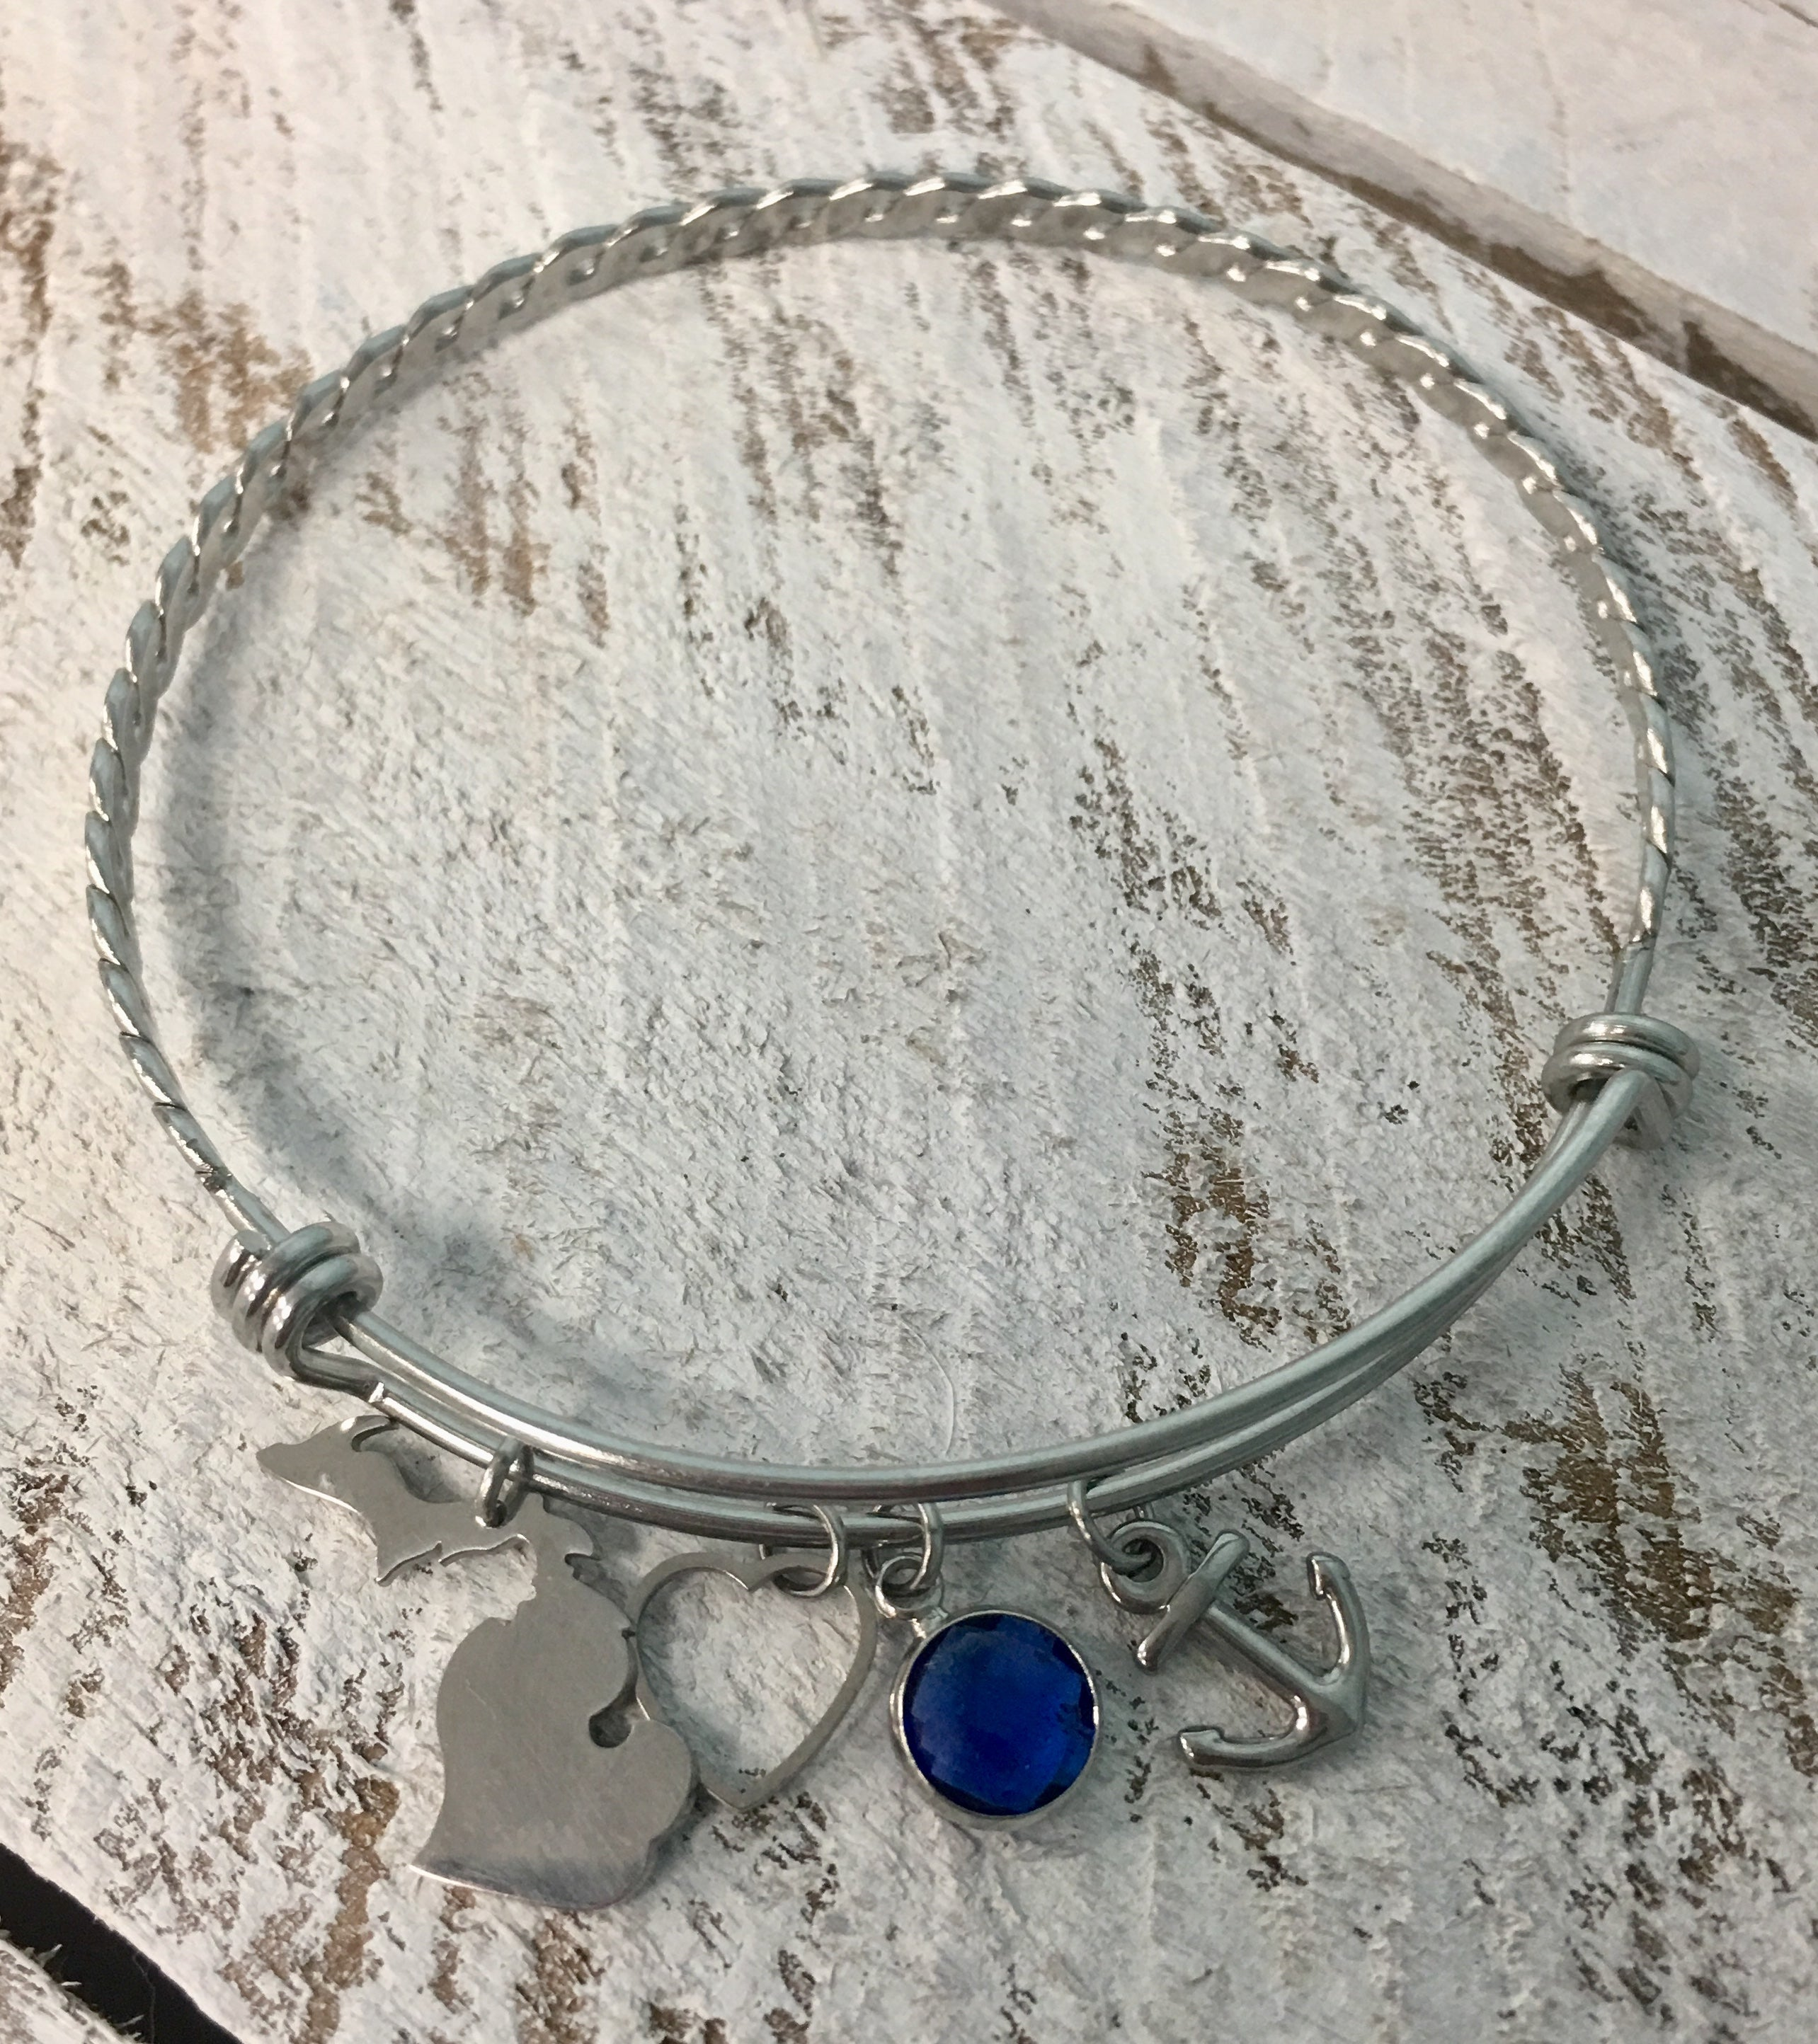 Michigan Bangle Bracelet- This Bracelet Says It All